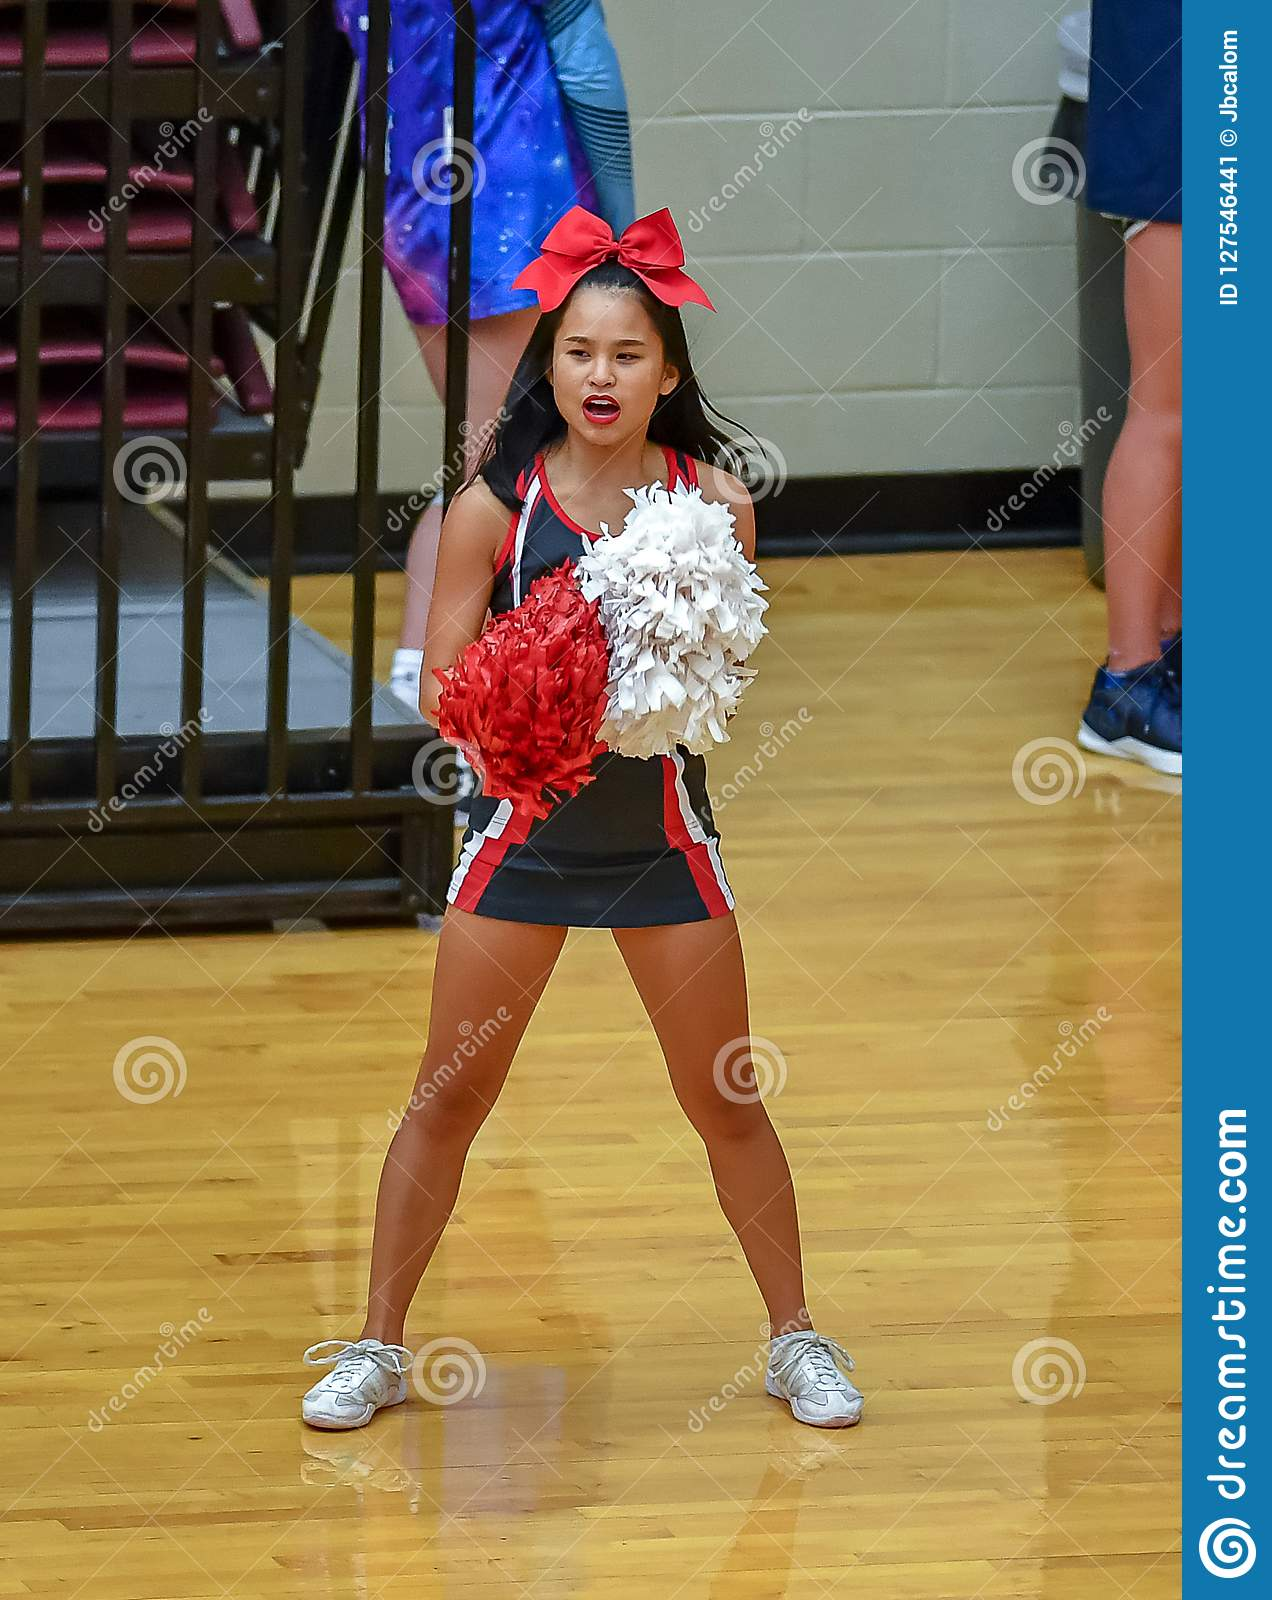 young otngagged Asian cheerleaders